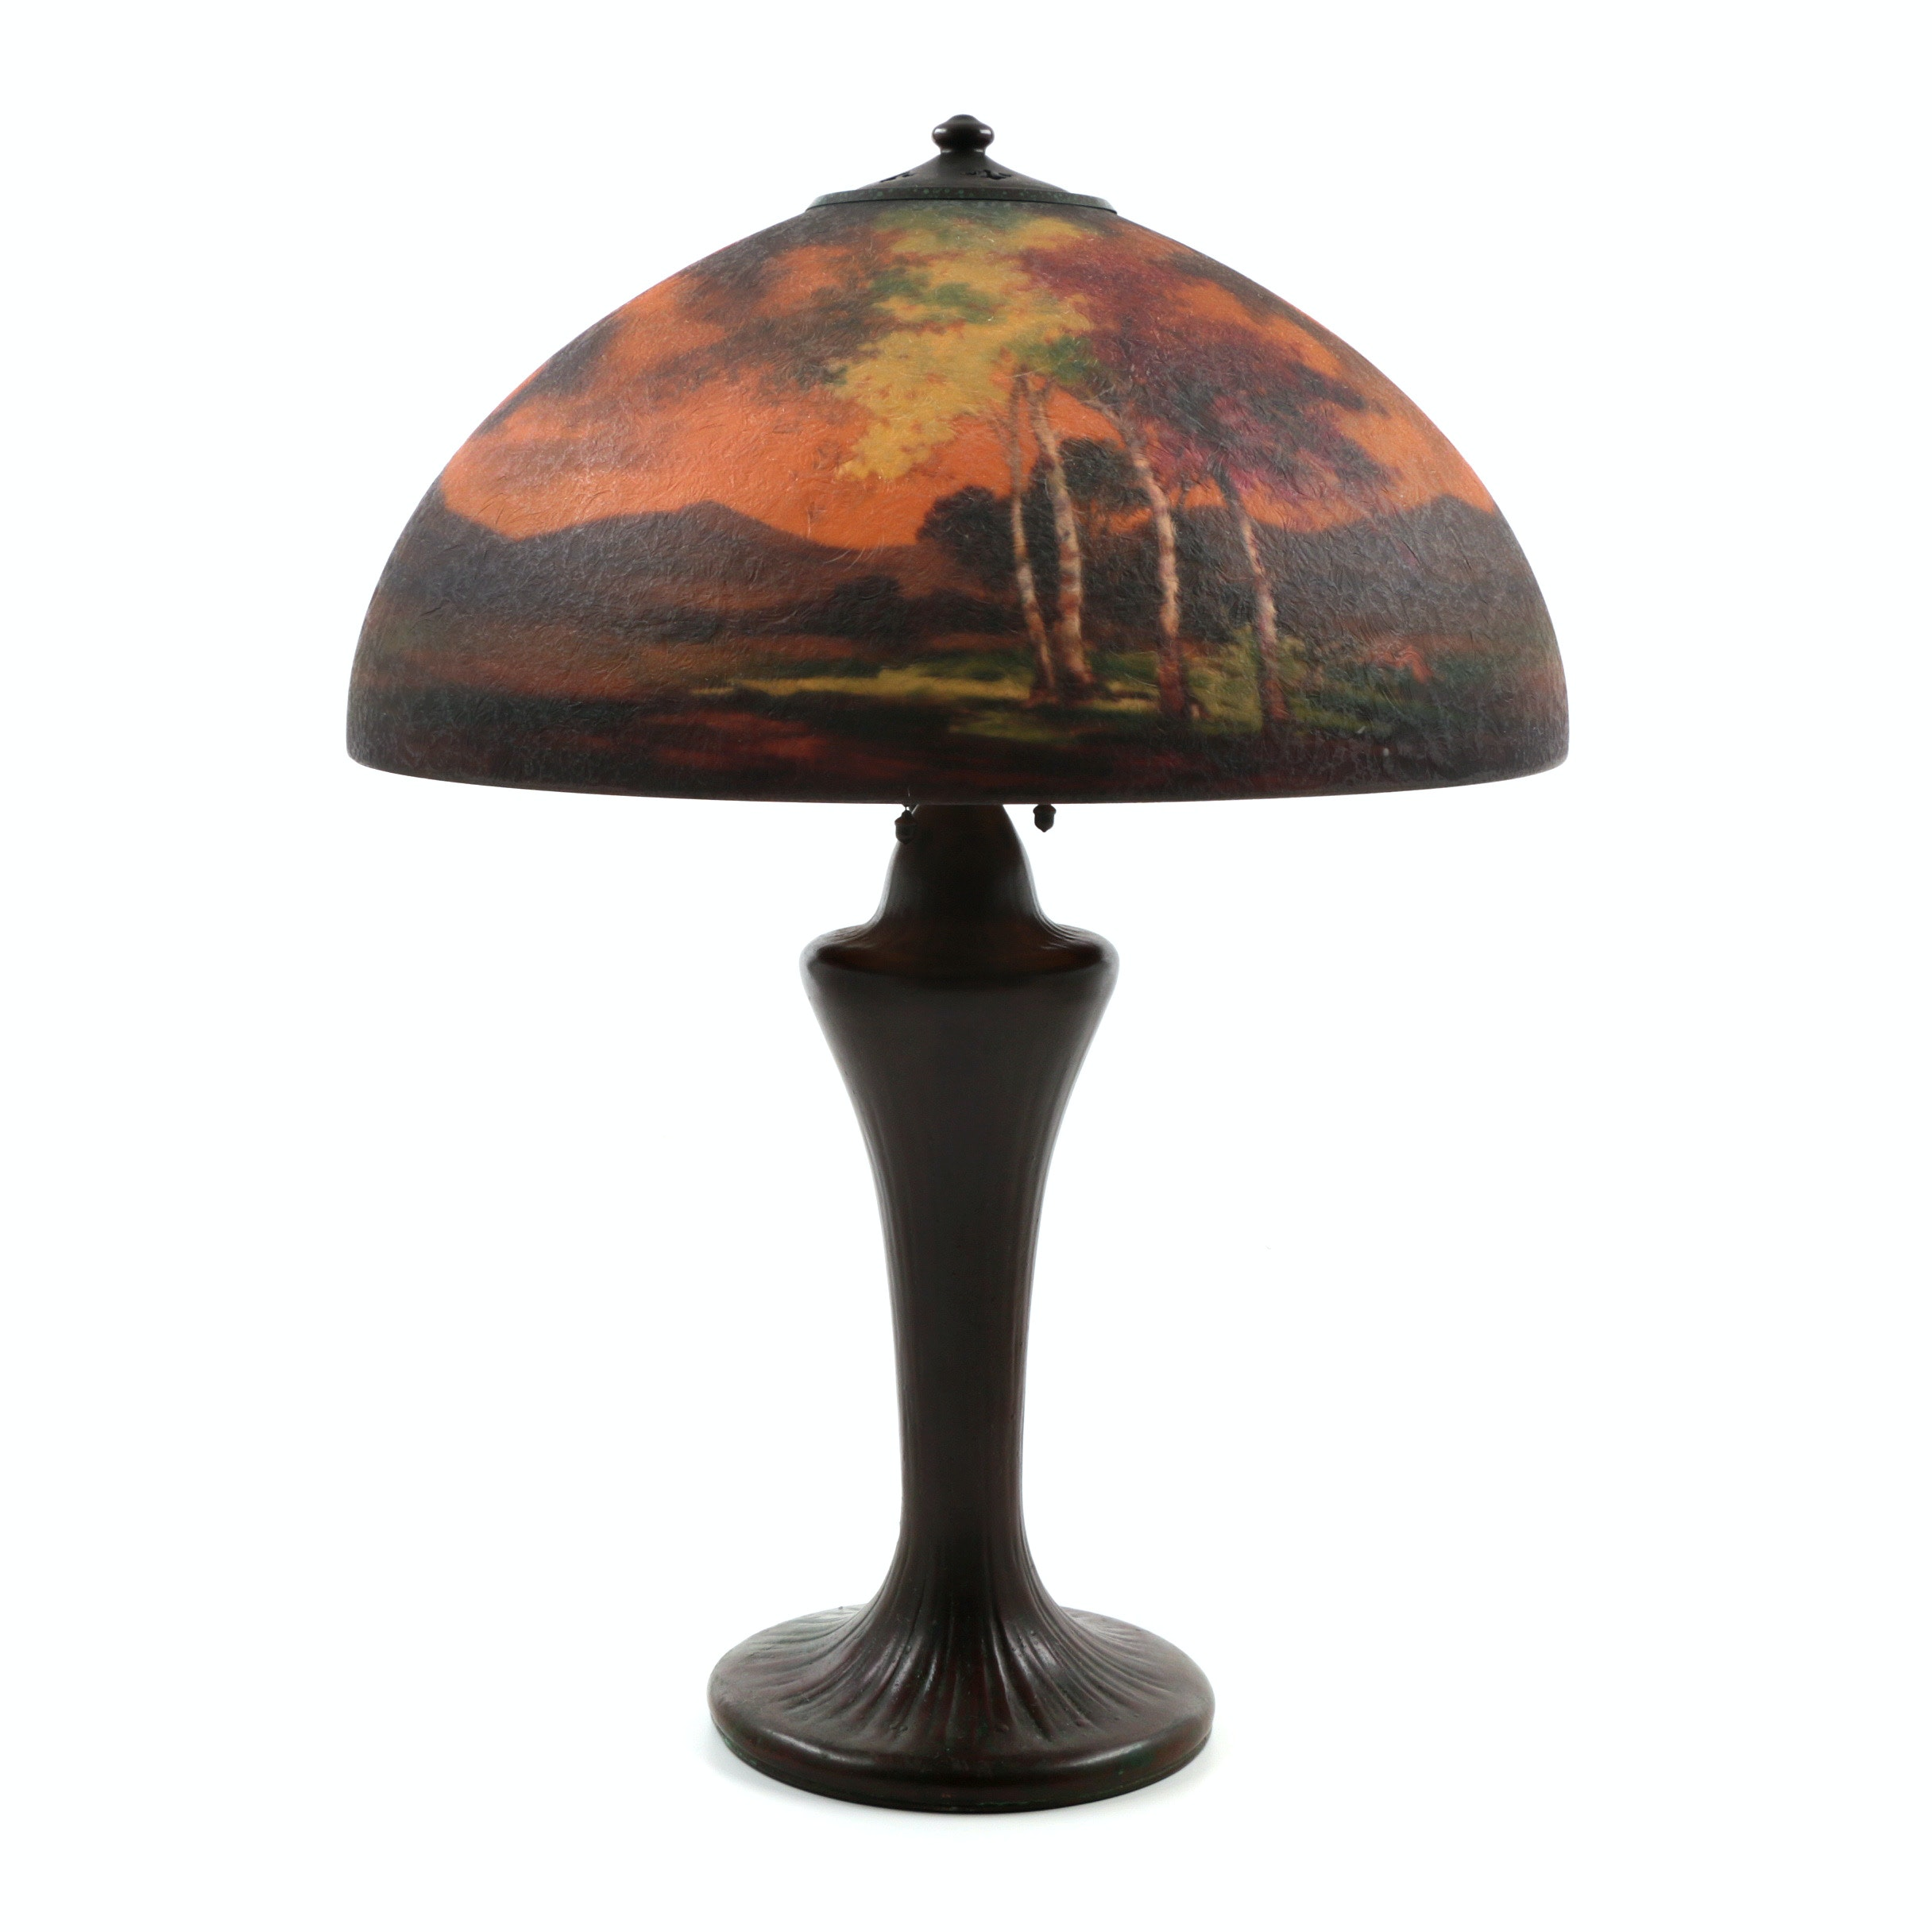 Handel Table Lamp with Reverse Painted Glass Shade Signed By Peter Broggi